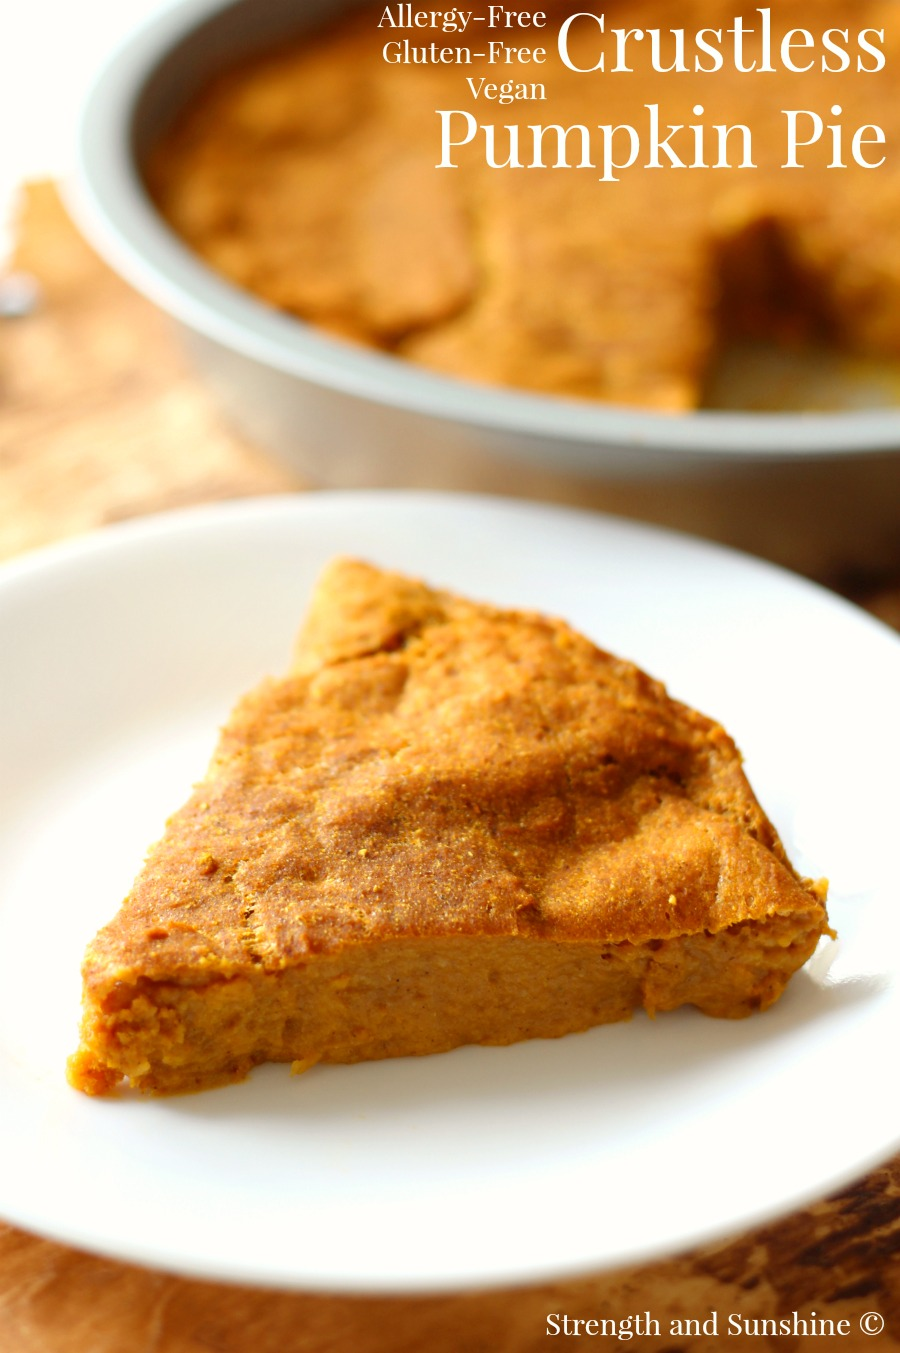 The Healthiest Crustless Pumpkin Pie | Strength and Sunshine @RebeccaGF666 Everything you love about pumpkin pie, but gluten-free, vegan, allergy-free, and none of the work! This is the Healthiest Crustless Pumpkin Pie around! So healthy, this dessert recipe may just be your next breakfast too!